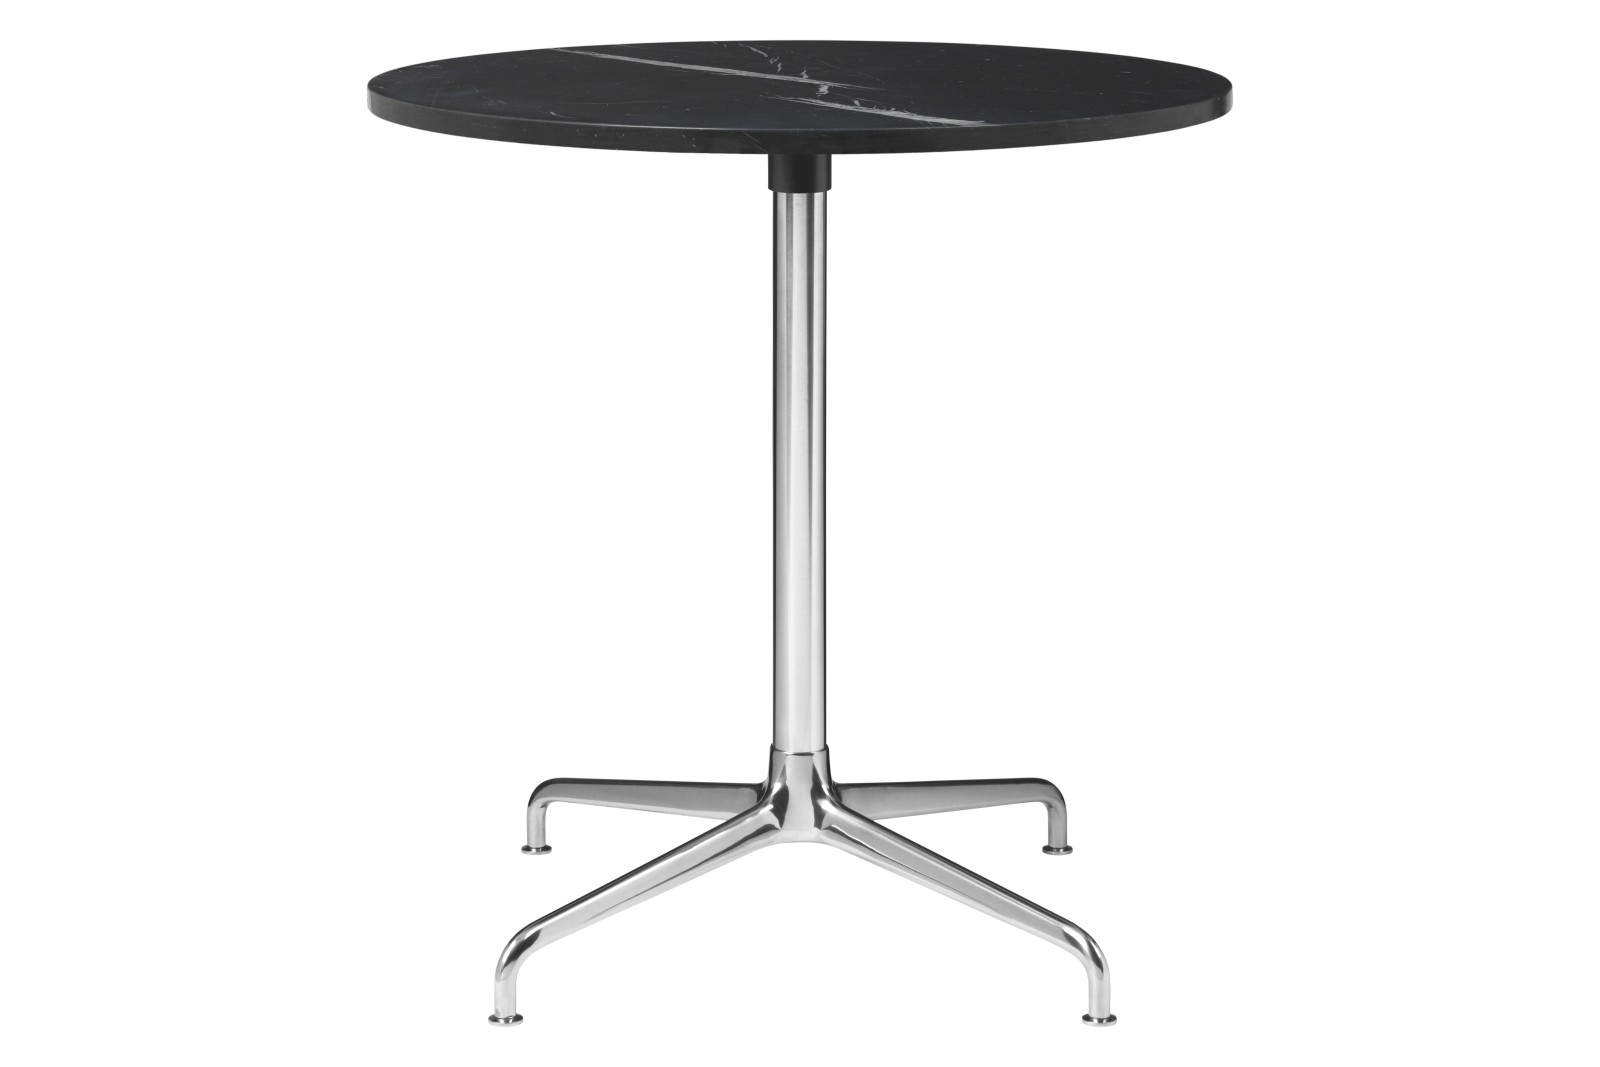 Beetle 4-Star Base Round Dining Table, Small Gubi Metal Polished Aluminium, Black Marquina Marble